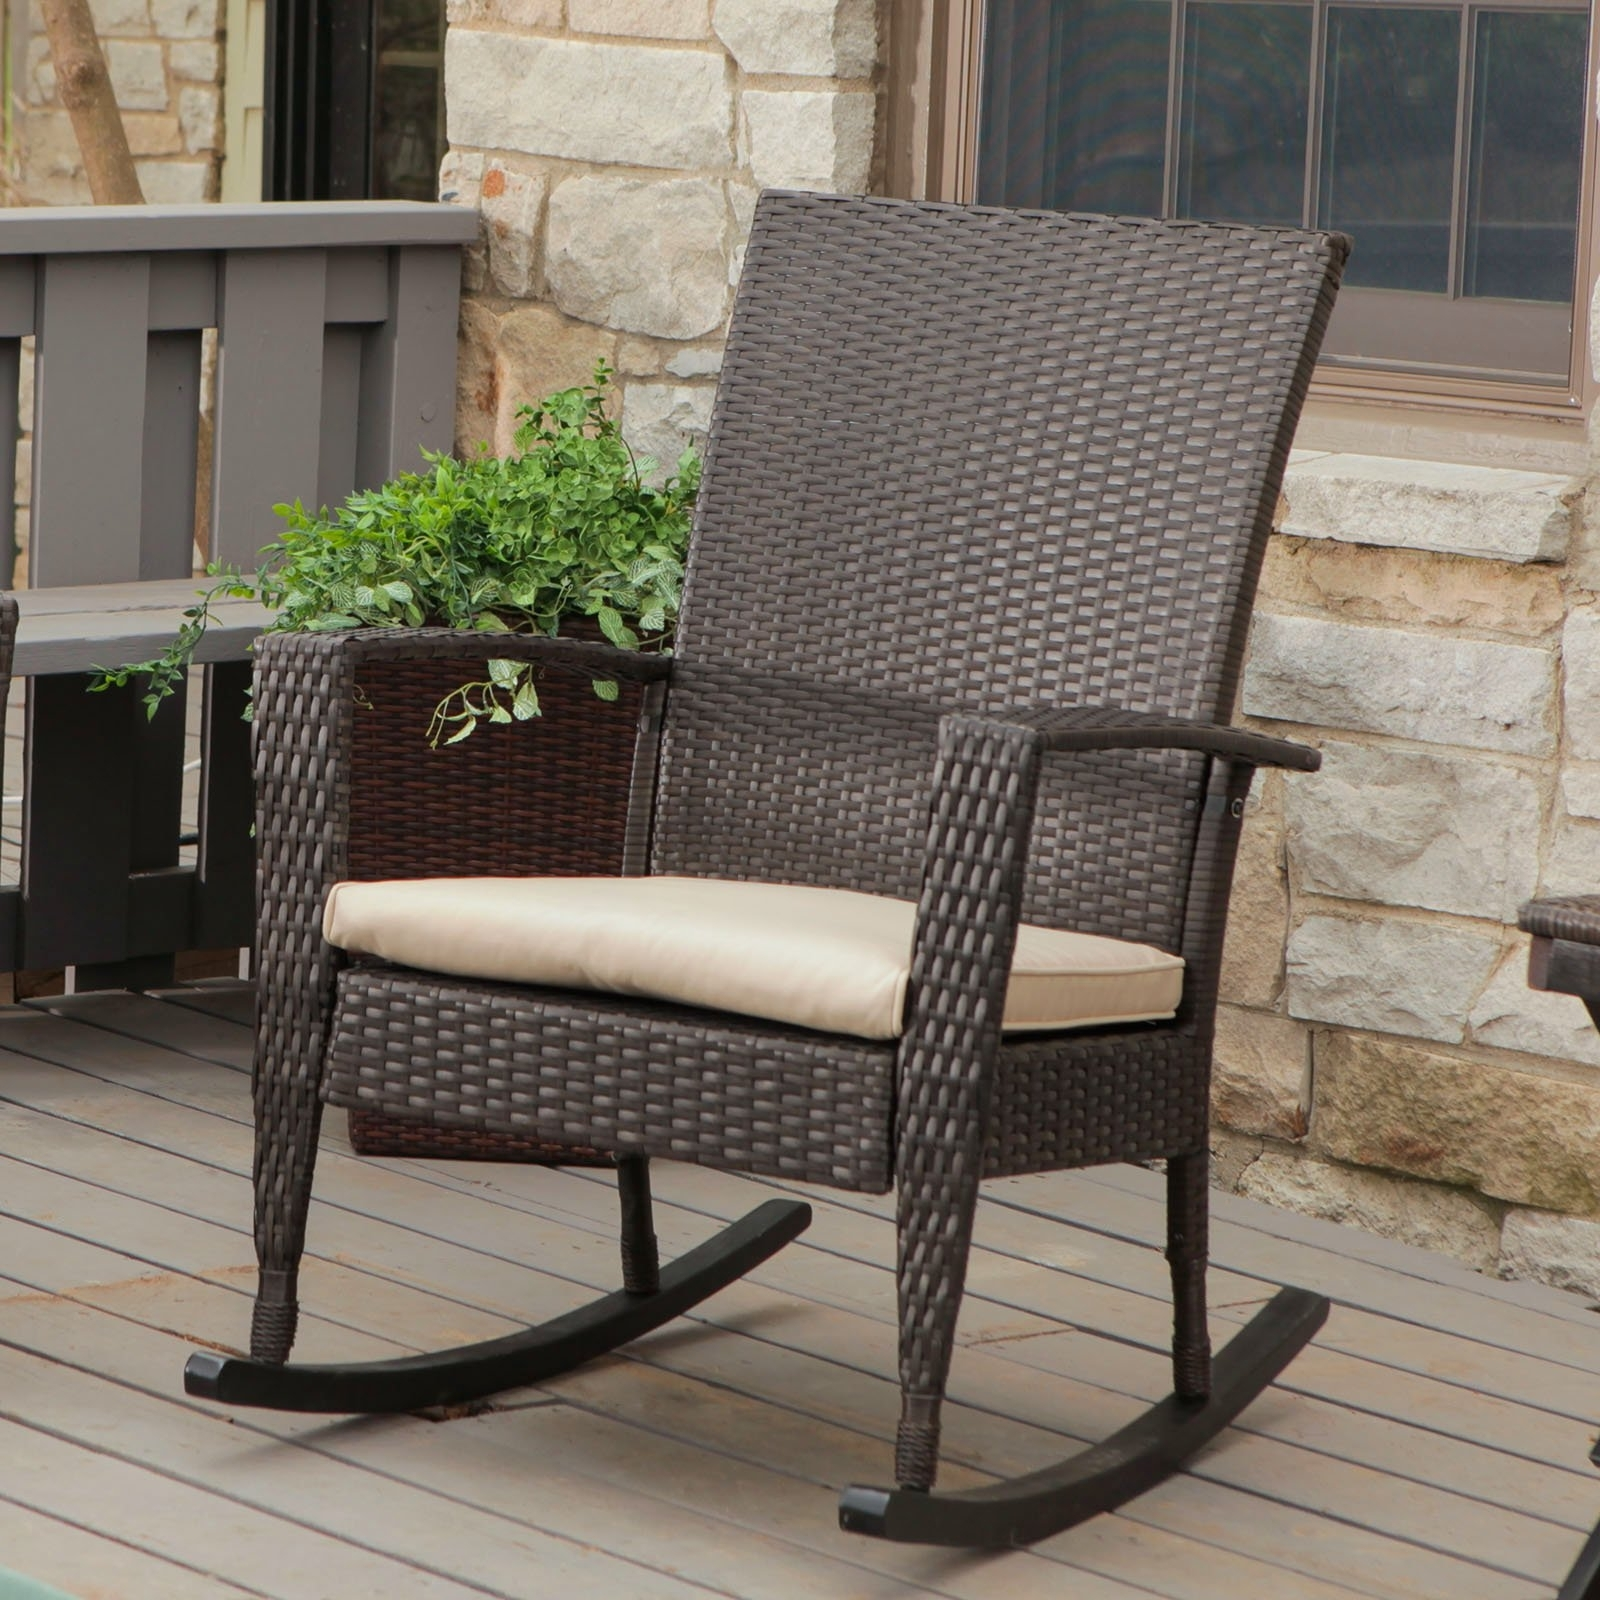 Trendy Simple Vintage Wicker Rocking Chair On Small Home Remodel Ideas With For Small Patio Rocking Chairs (View 15 of 20)